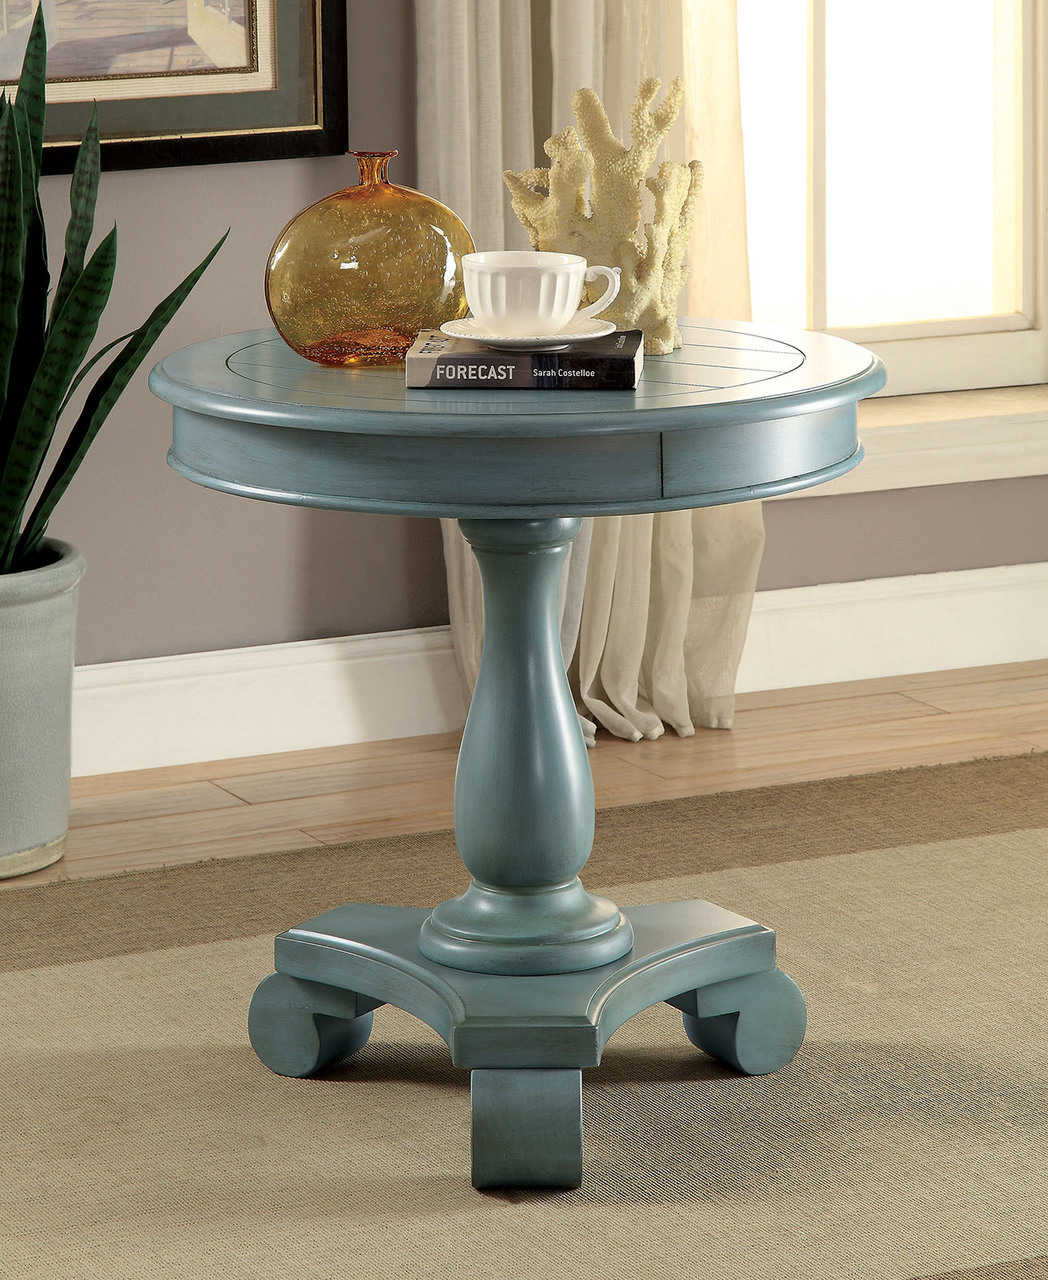 kalea antique teal round accent table plank style top white and gold lamp farm coffee custom dining tables oval glass small console nest marble black drop leaf room bar set ikea